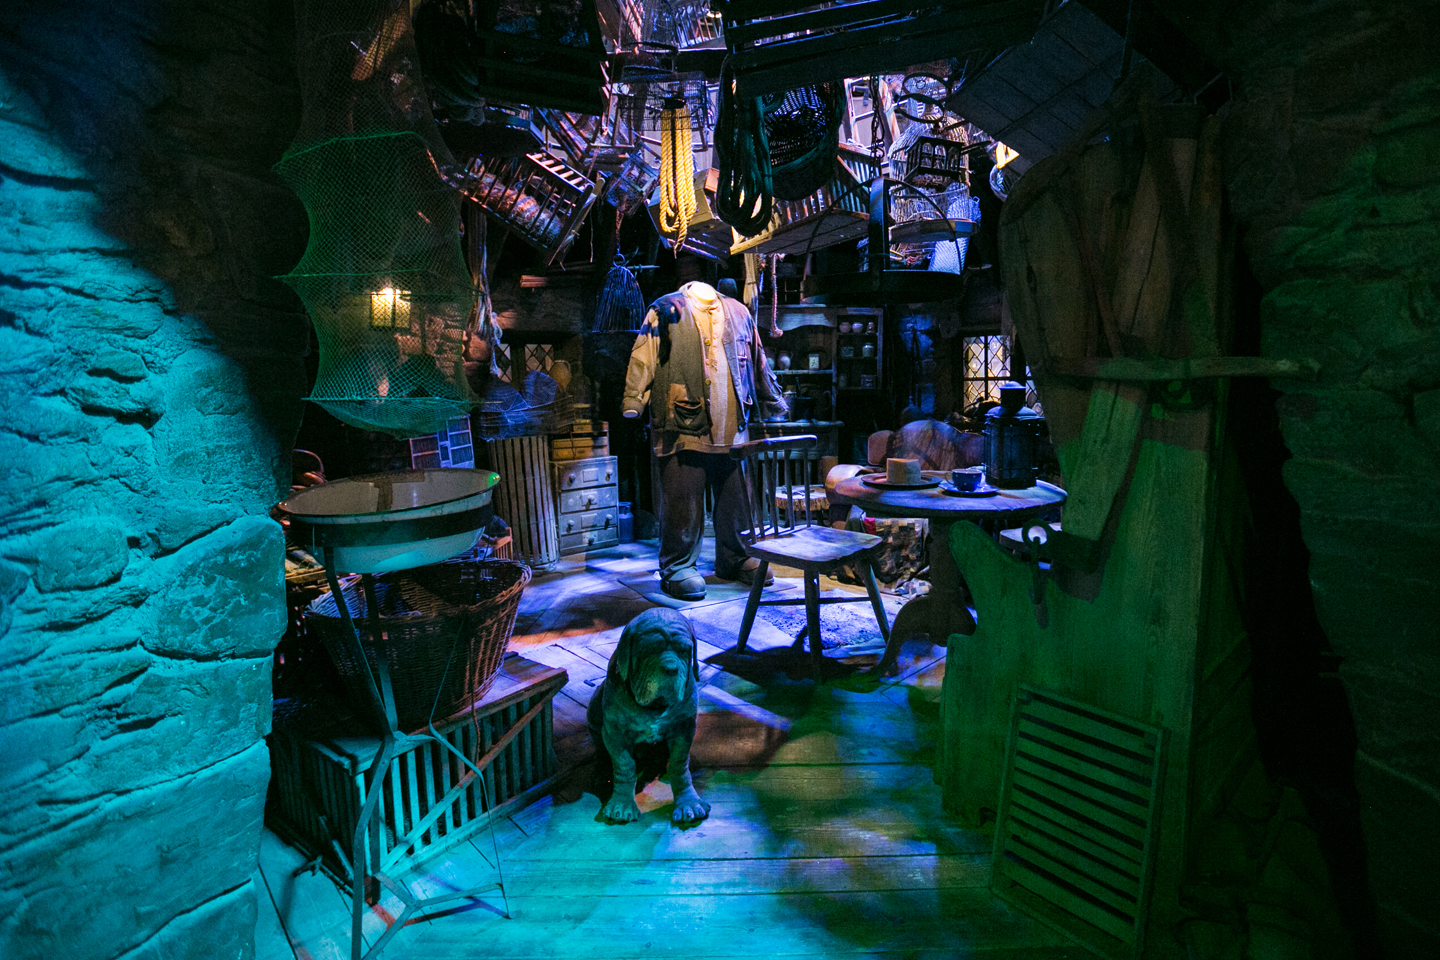 harry-potter-studio-tour-hagrid's-hut